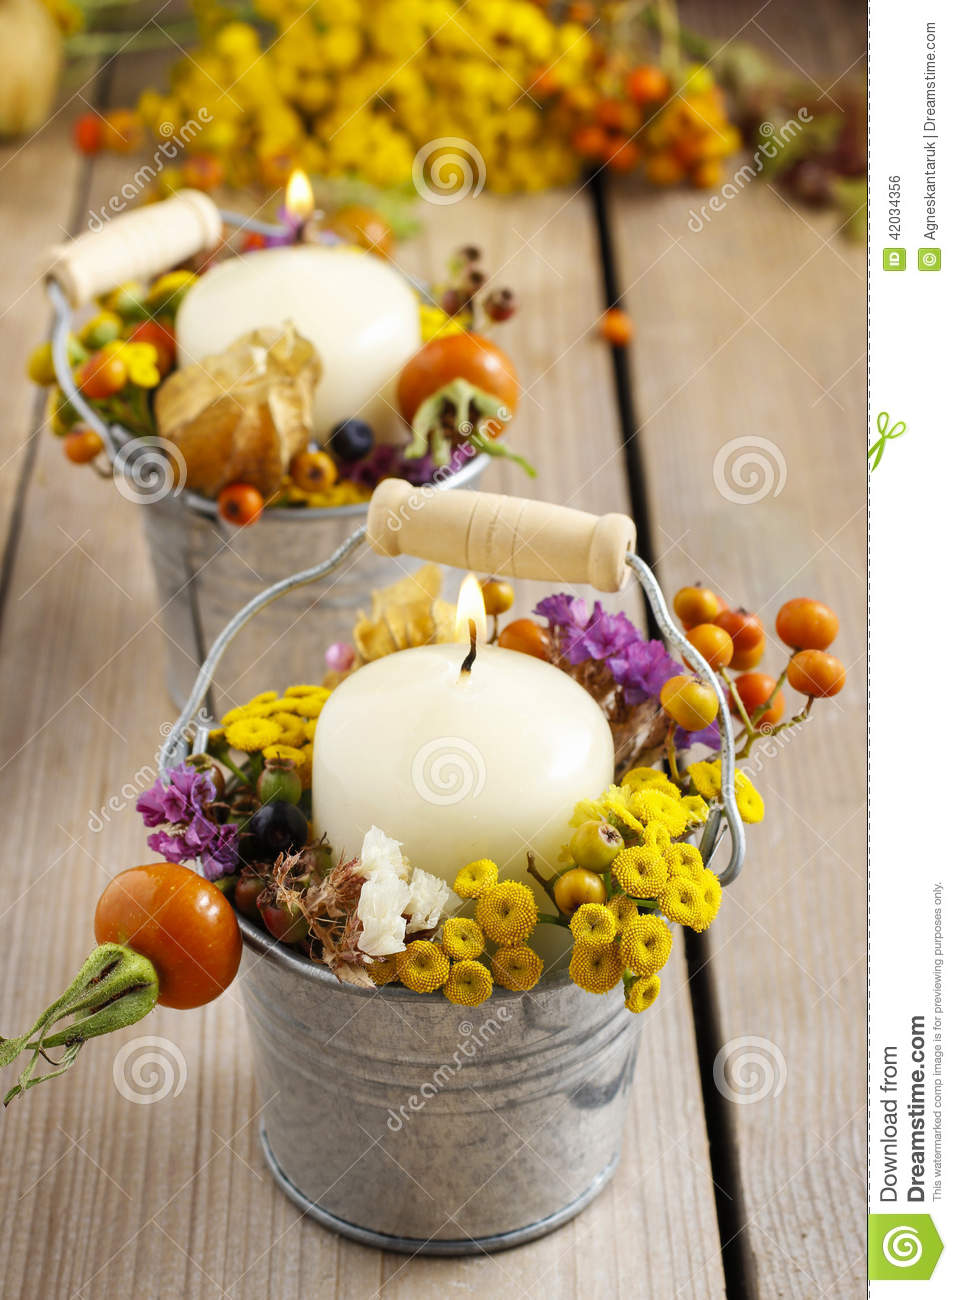 Silver bucket with autumn flowers and other plants.